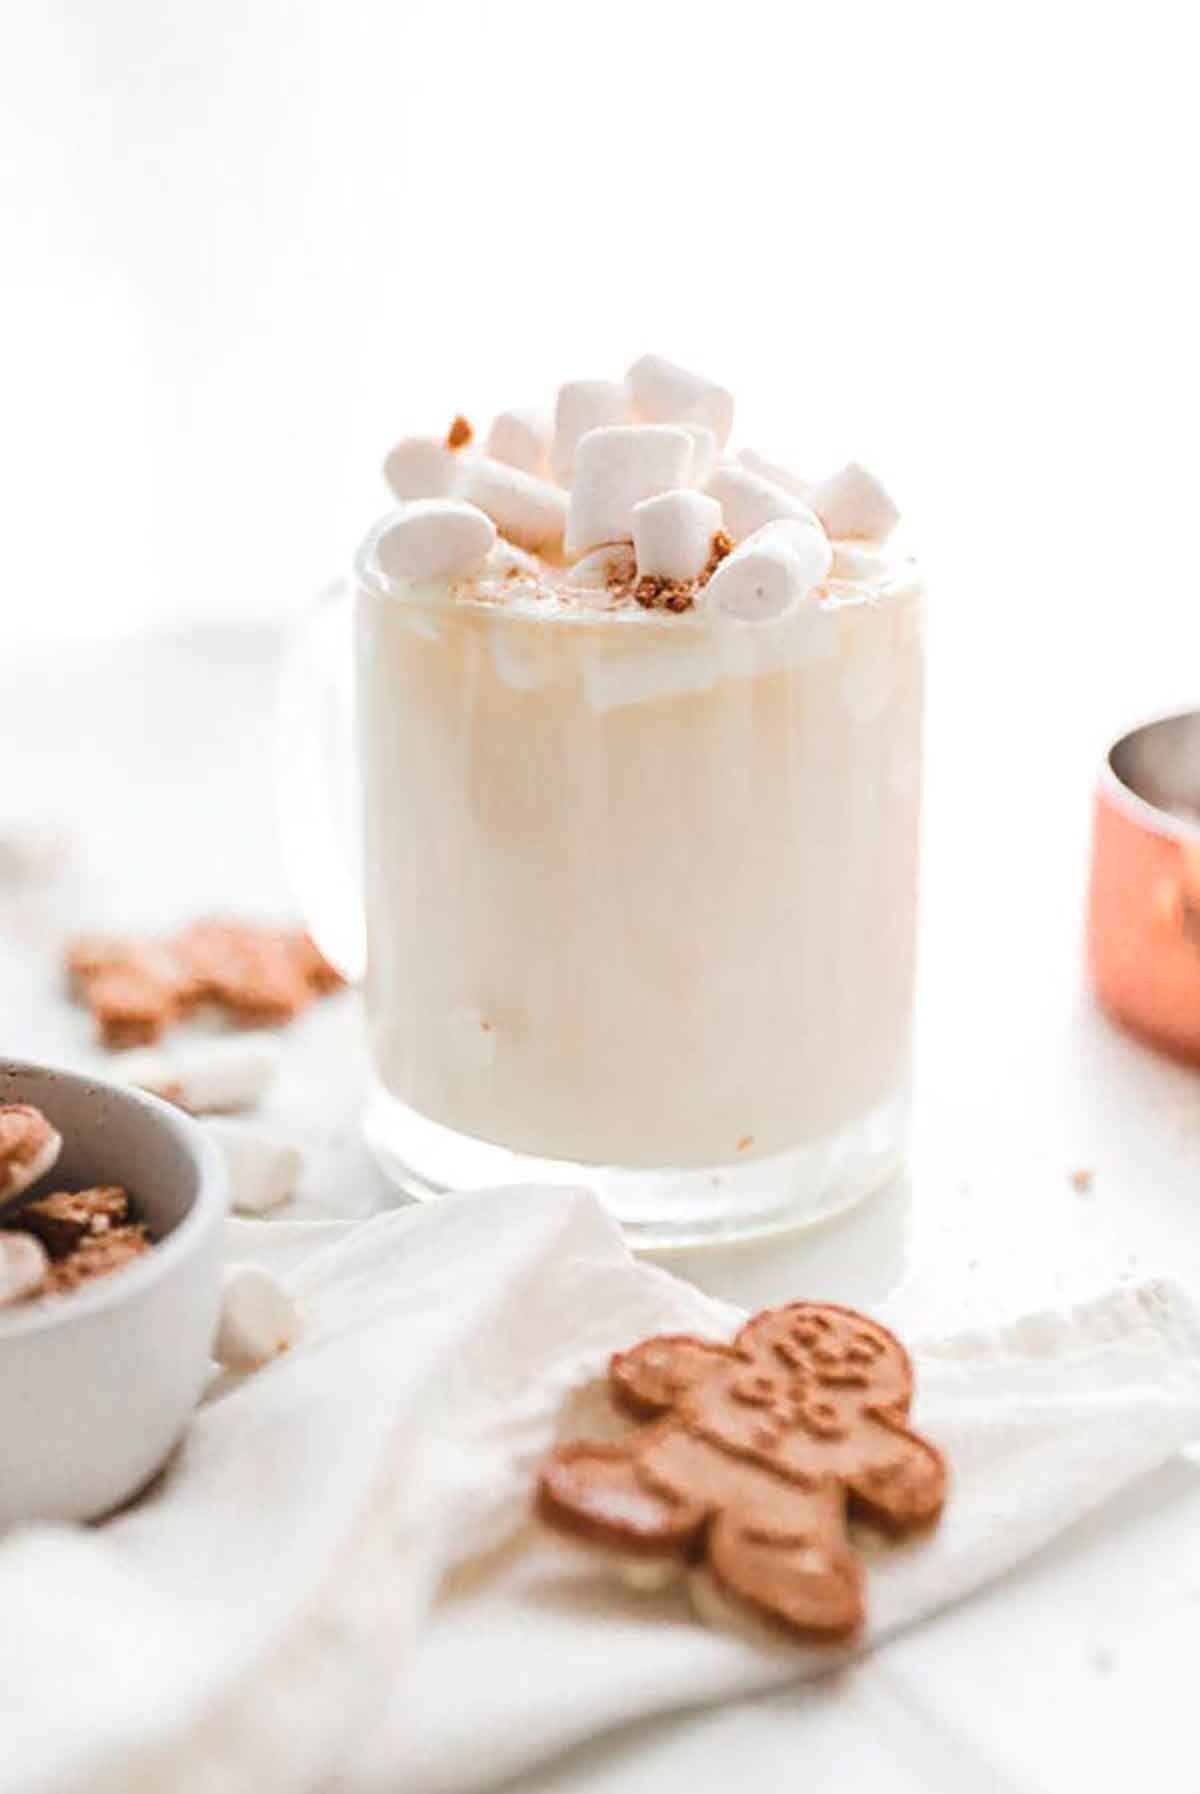 A creamy cocktail in a glass, topped with marshmallows and surrounded by cookies.